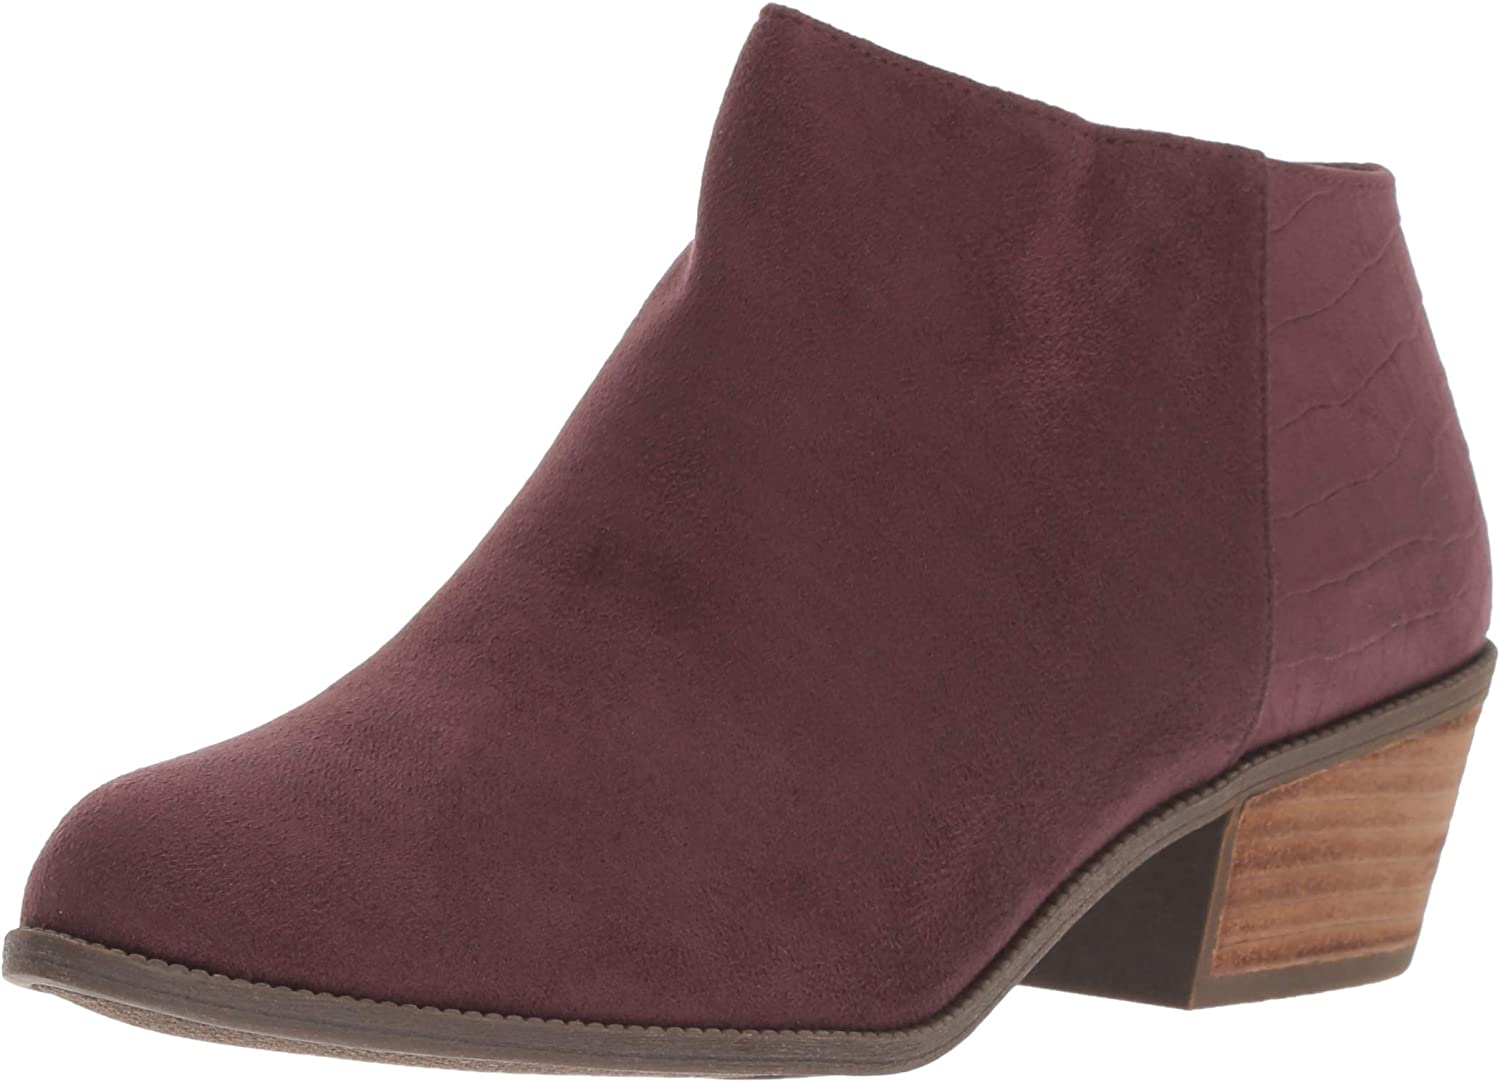 Dr. Scholl's Max 56% OFF Shoes Women's Selling and selling Ankle Brendel Boot